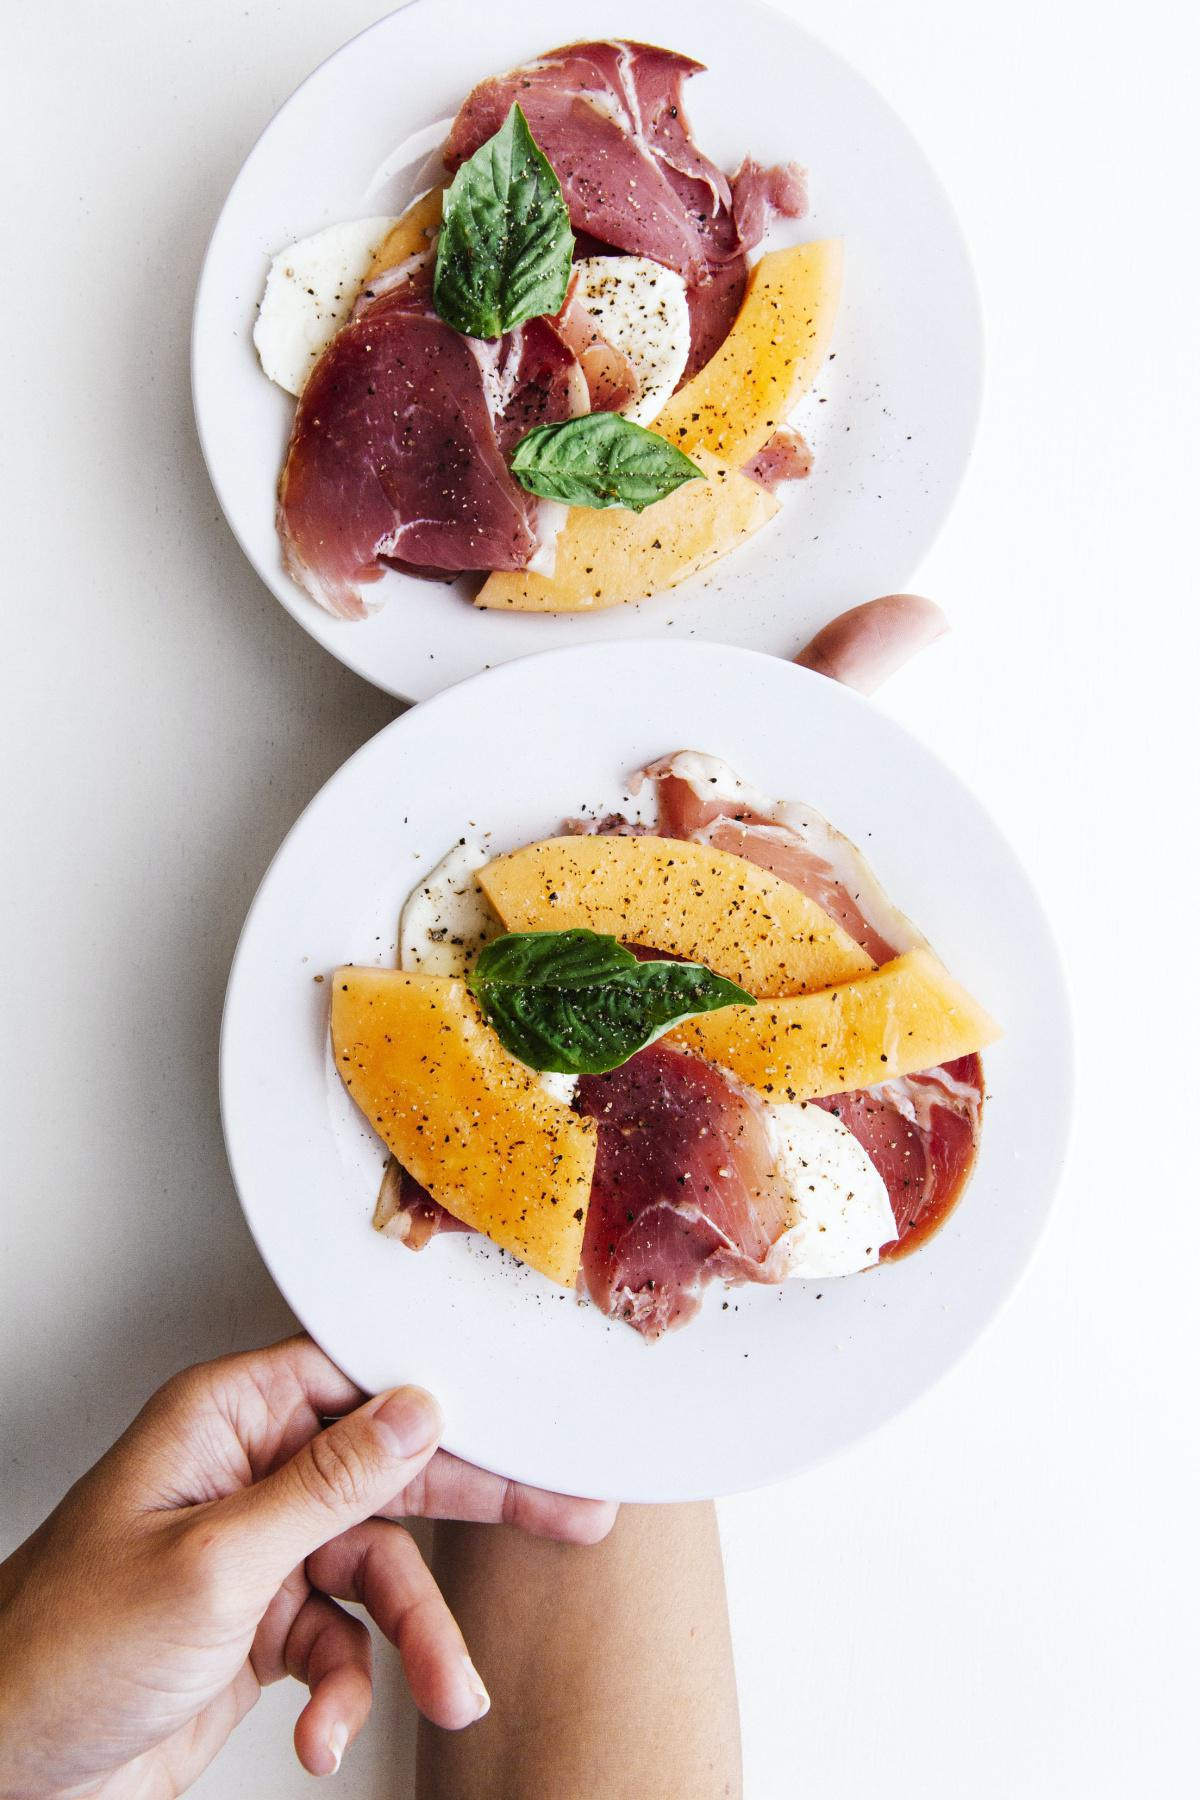 Melon and Watermelon Salad with Country Ham